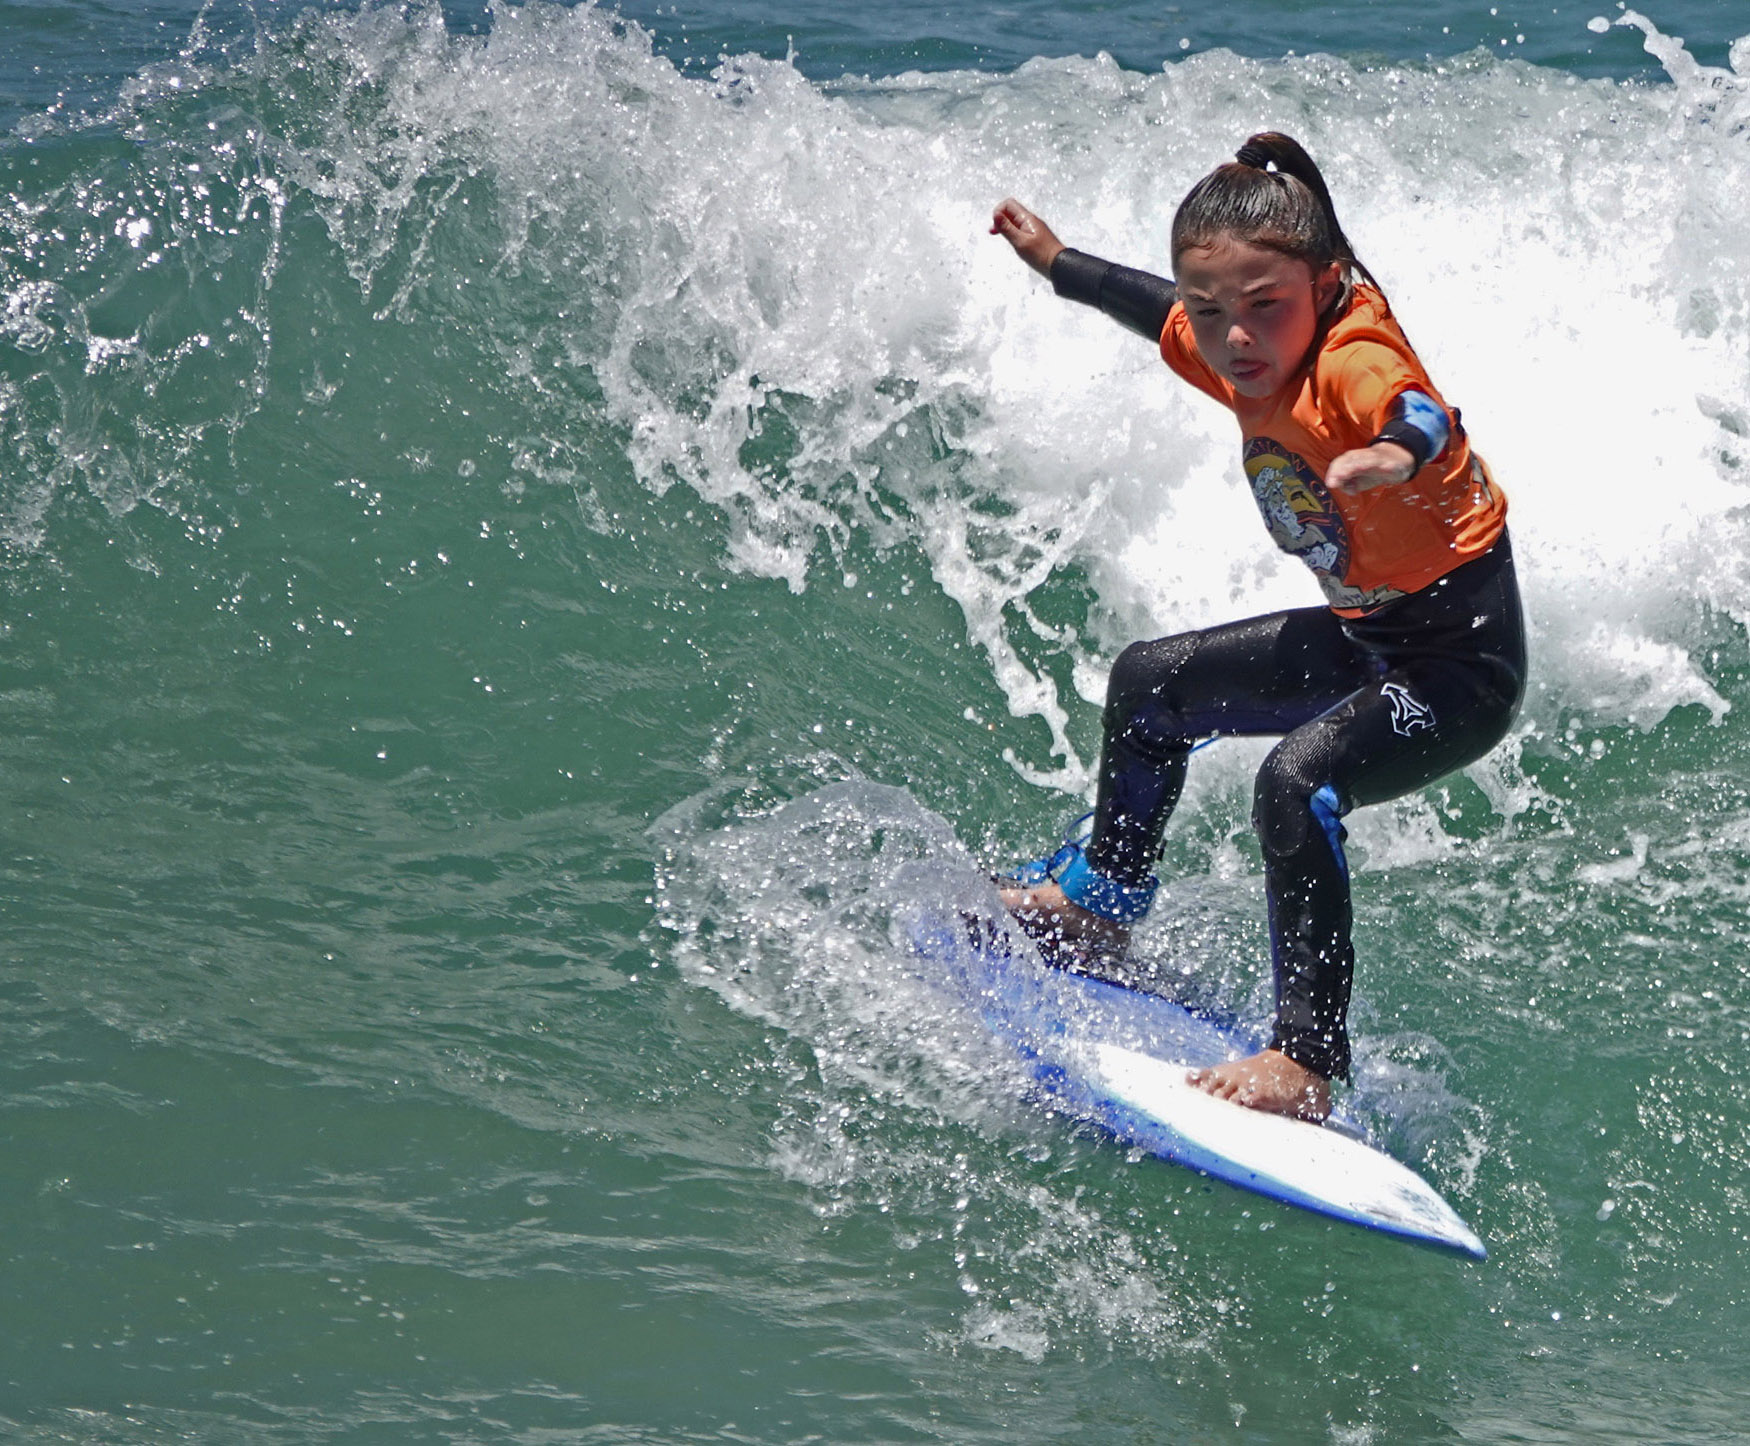 Pushed into a wave by her dad, Reese Shigei powers a cutback during a 'Groms Rule' surf contest at the San Clemente Ocean Festival. Photo: Fred Swegles